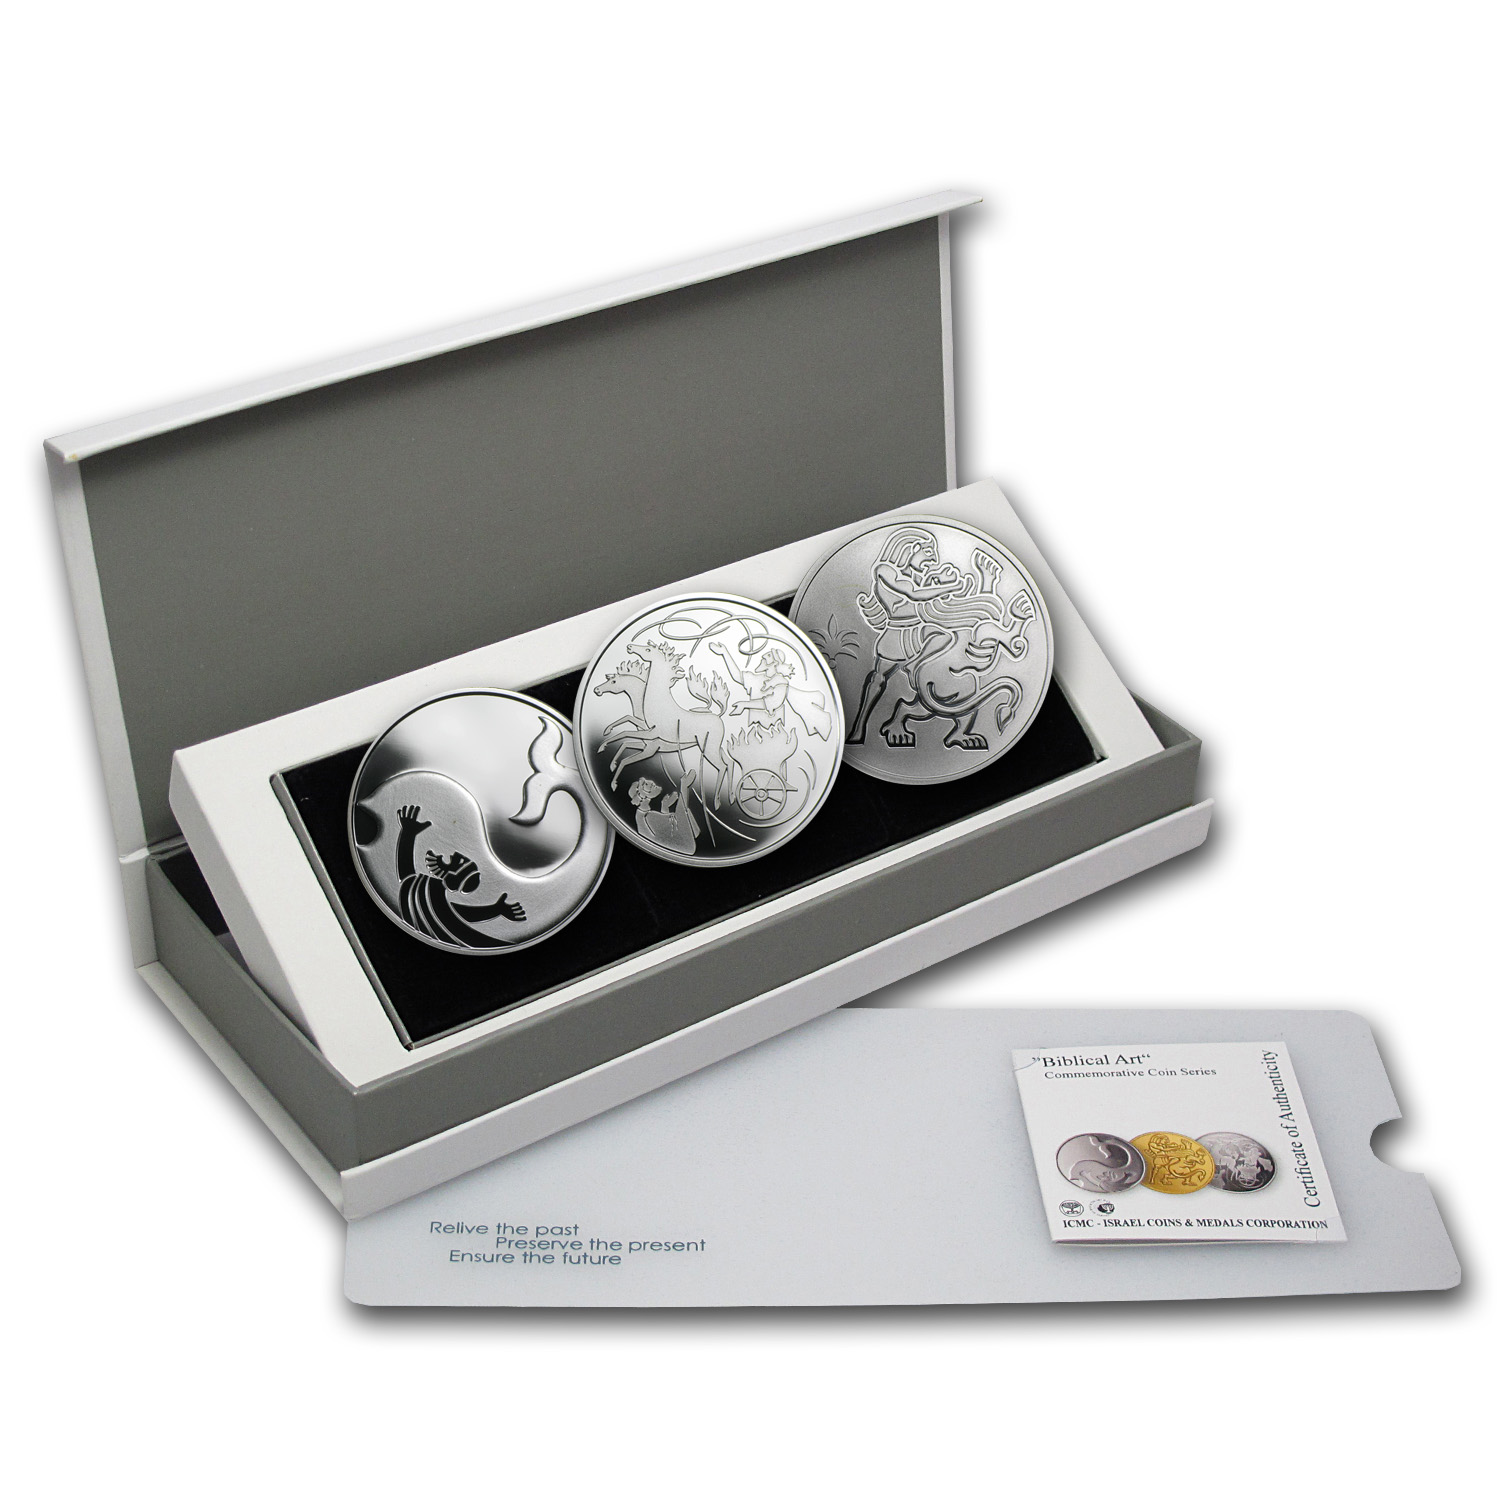 2009-11 3-Coin Israel Biblical Art Series Silver 1 NIS Set